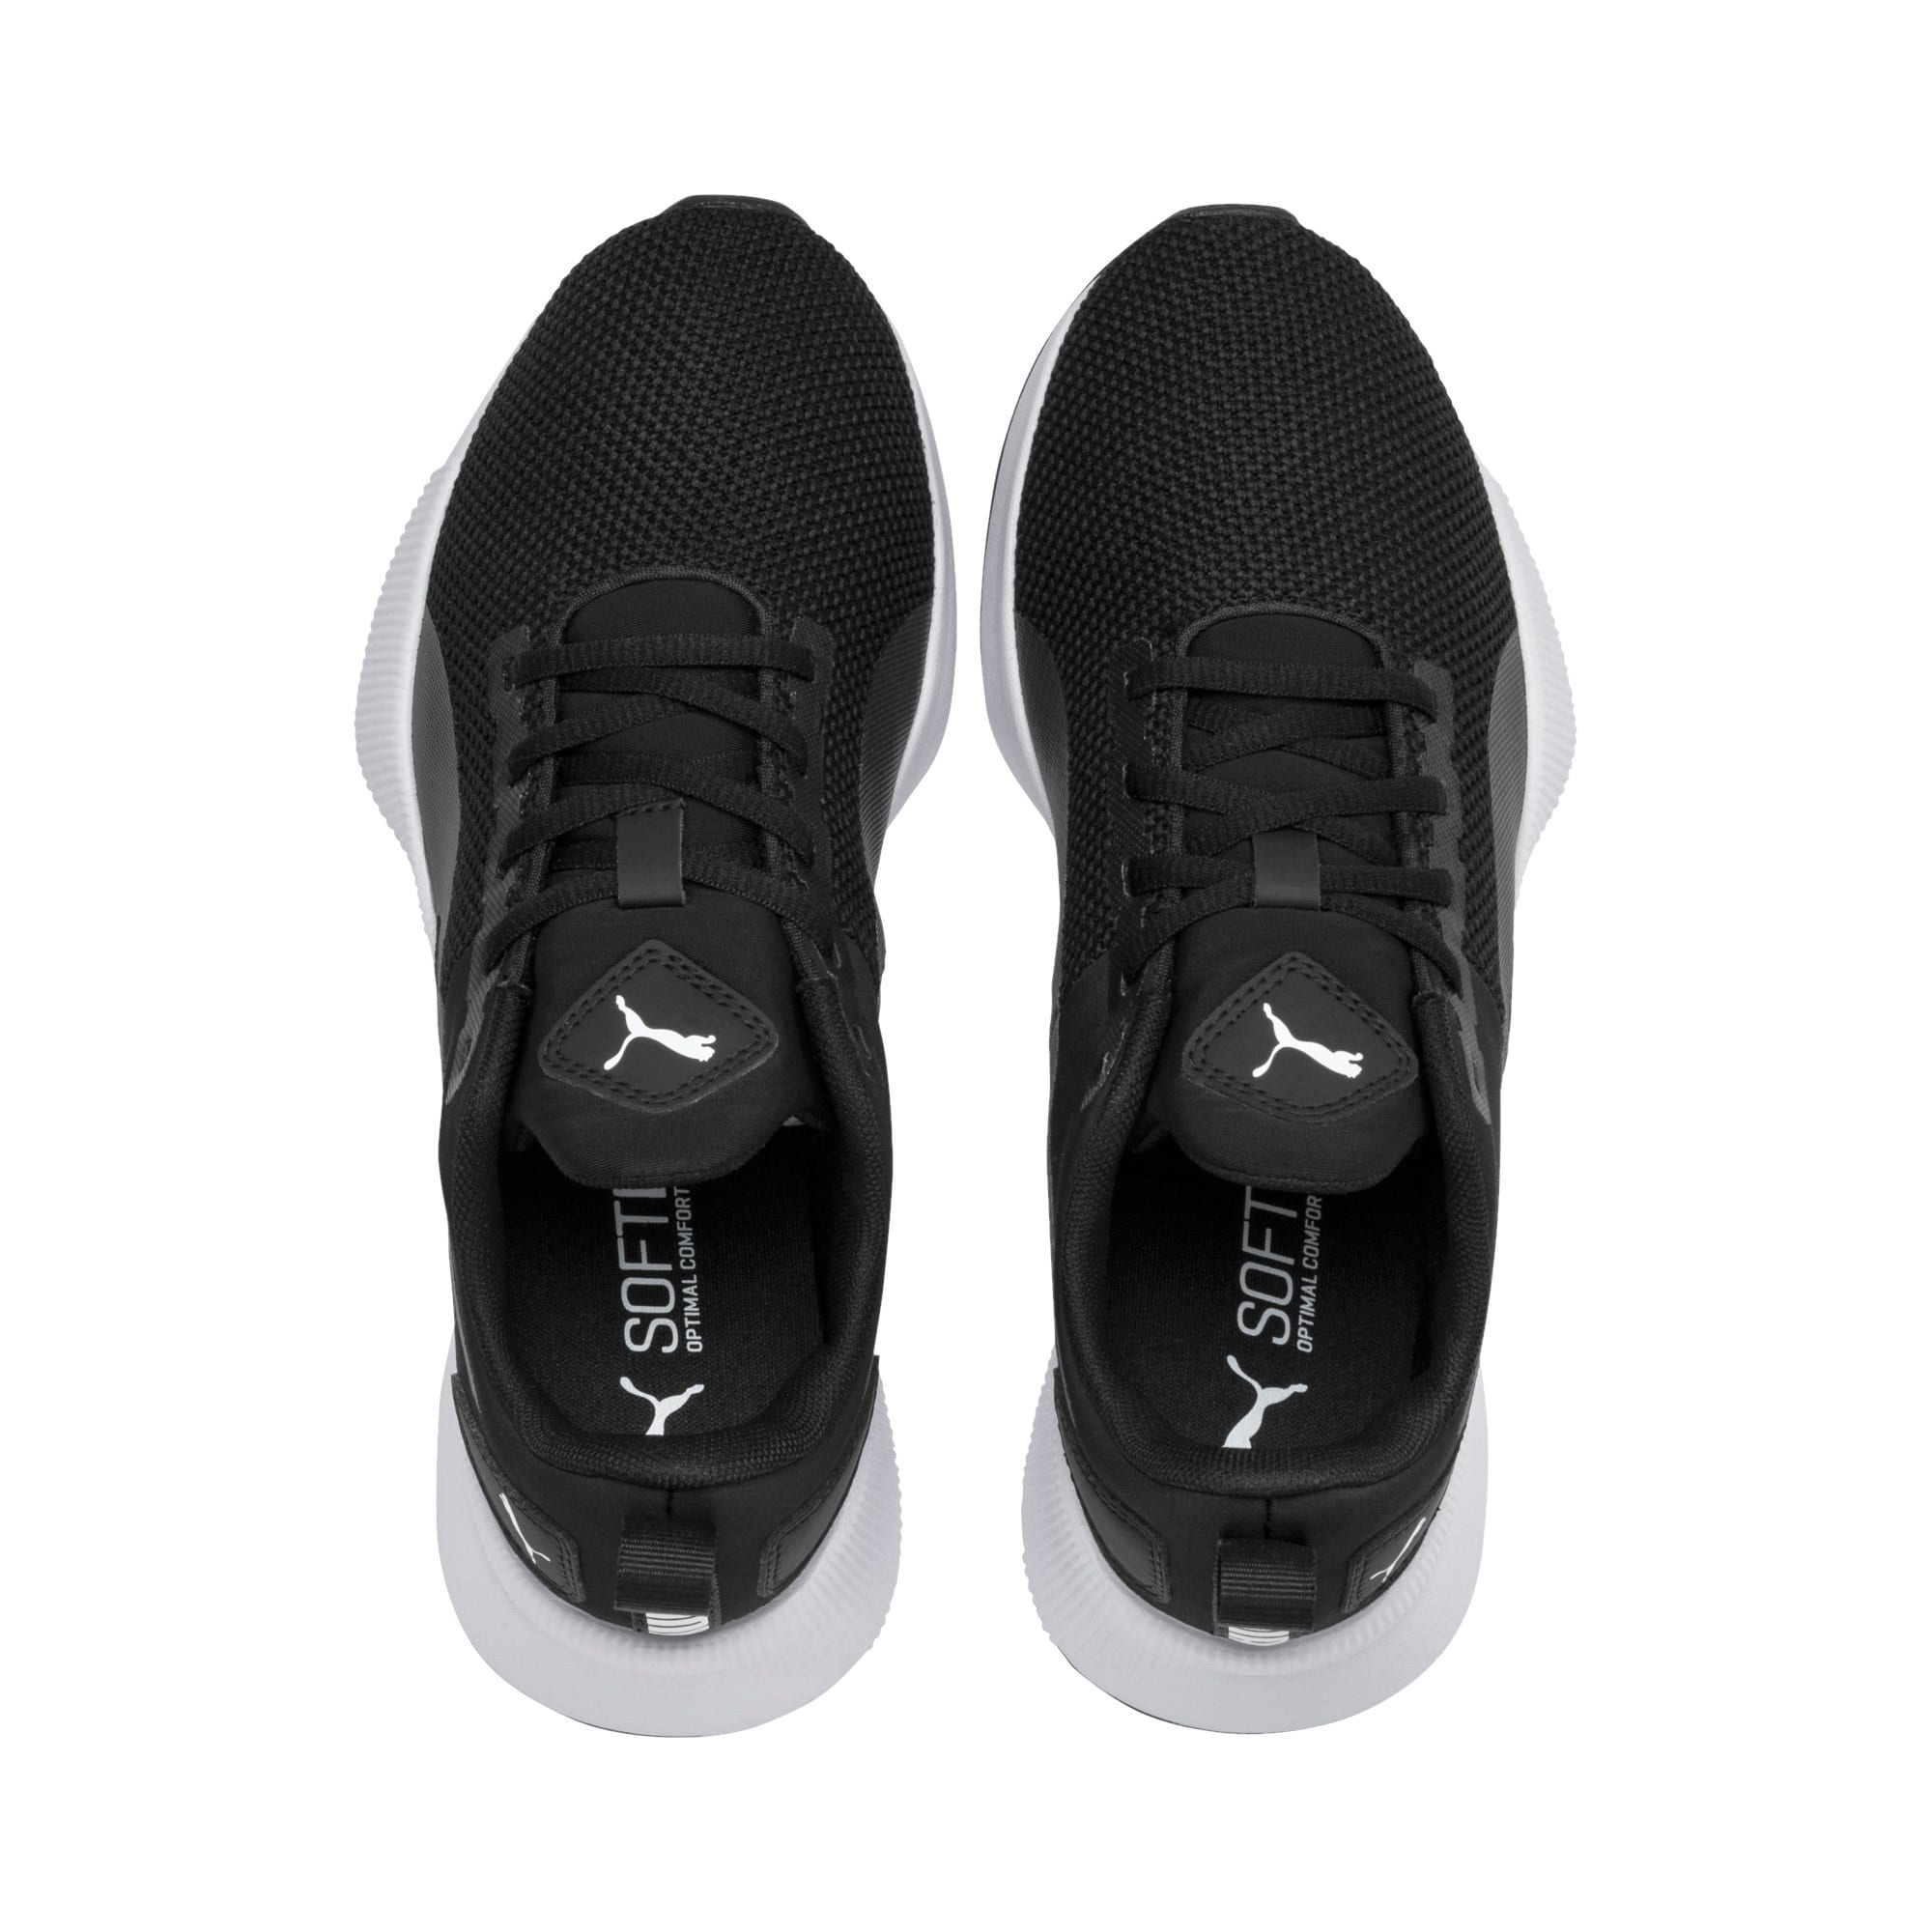 Thumbnail 6 of Flyer Runner Youth Trainers, Puma Black-Puma White, medium-IND